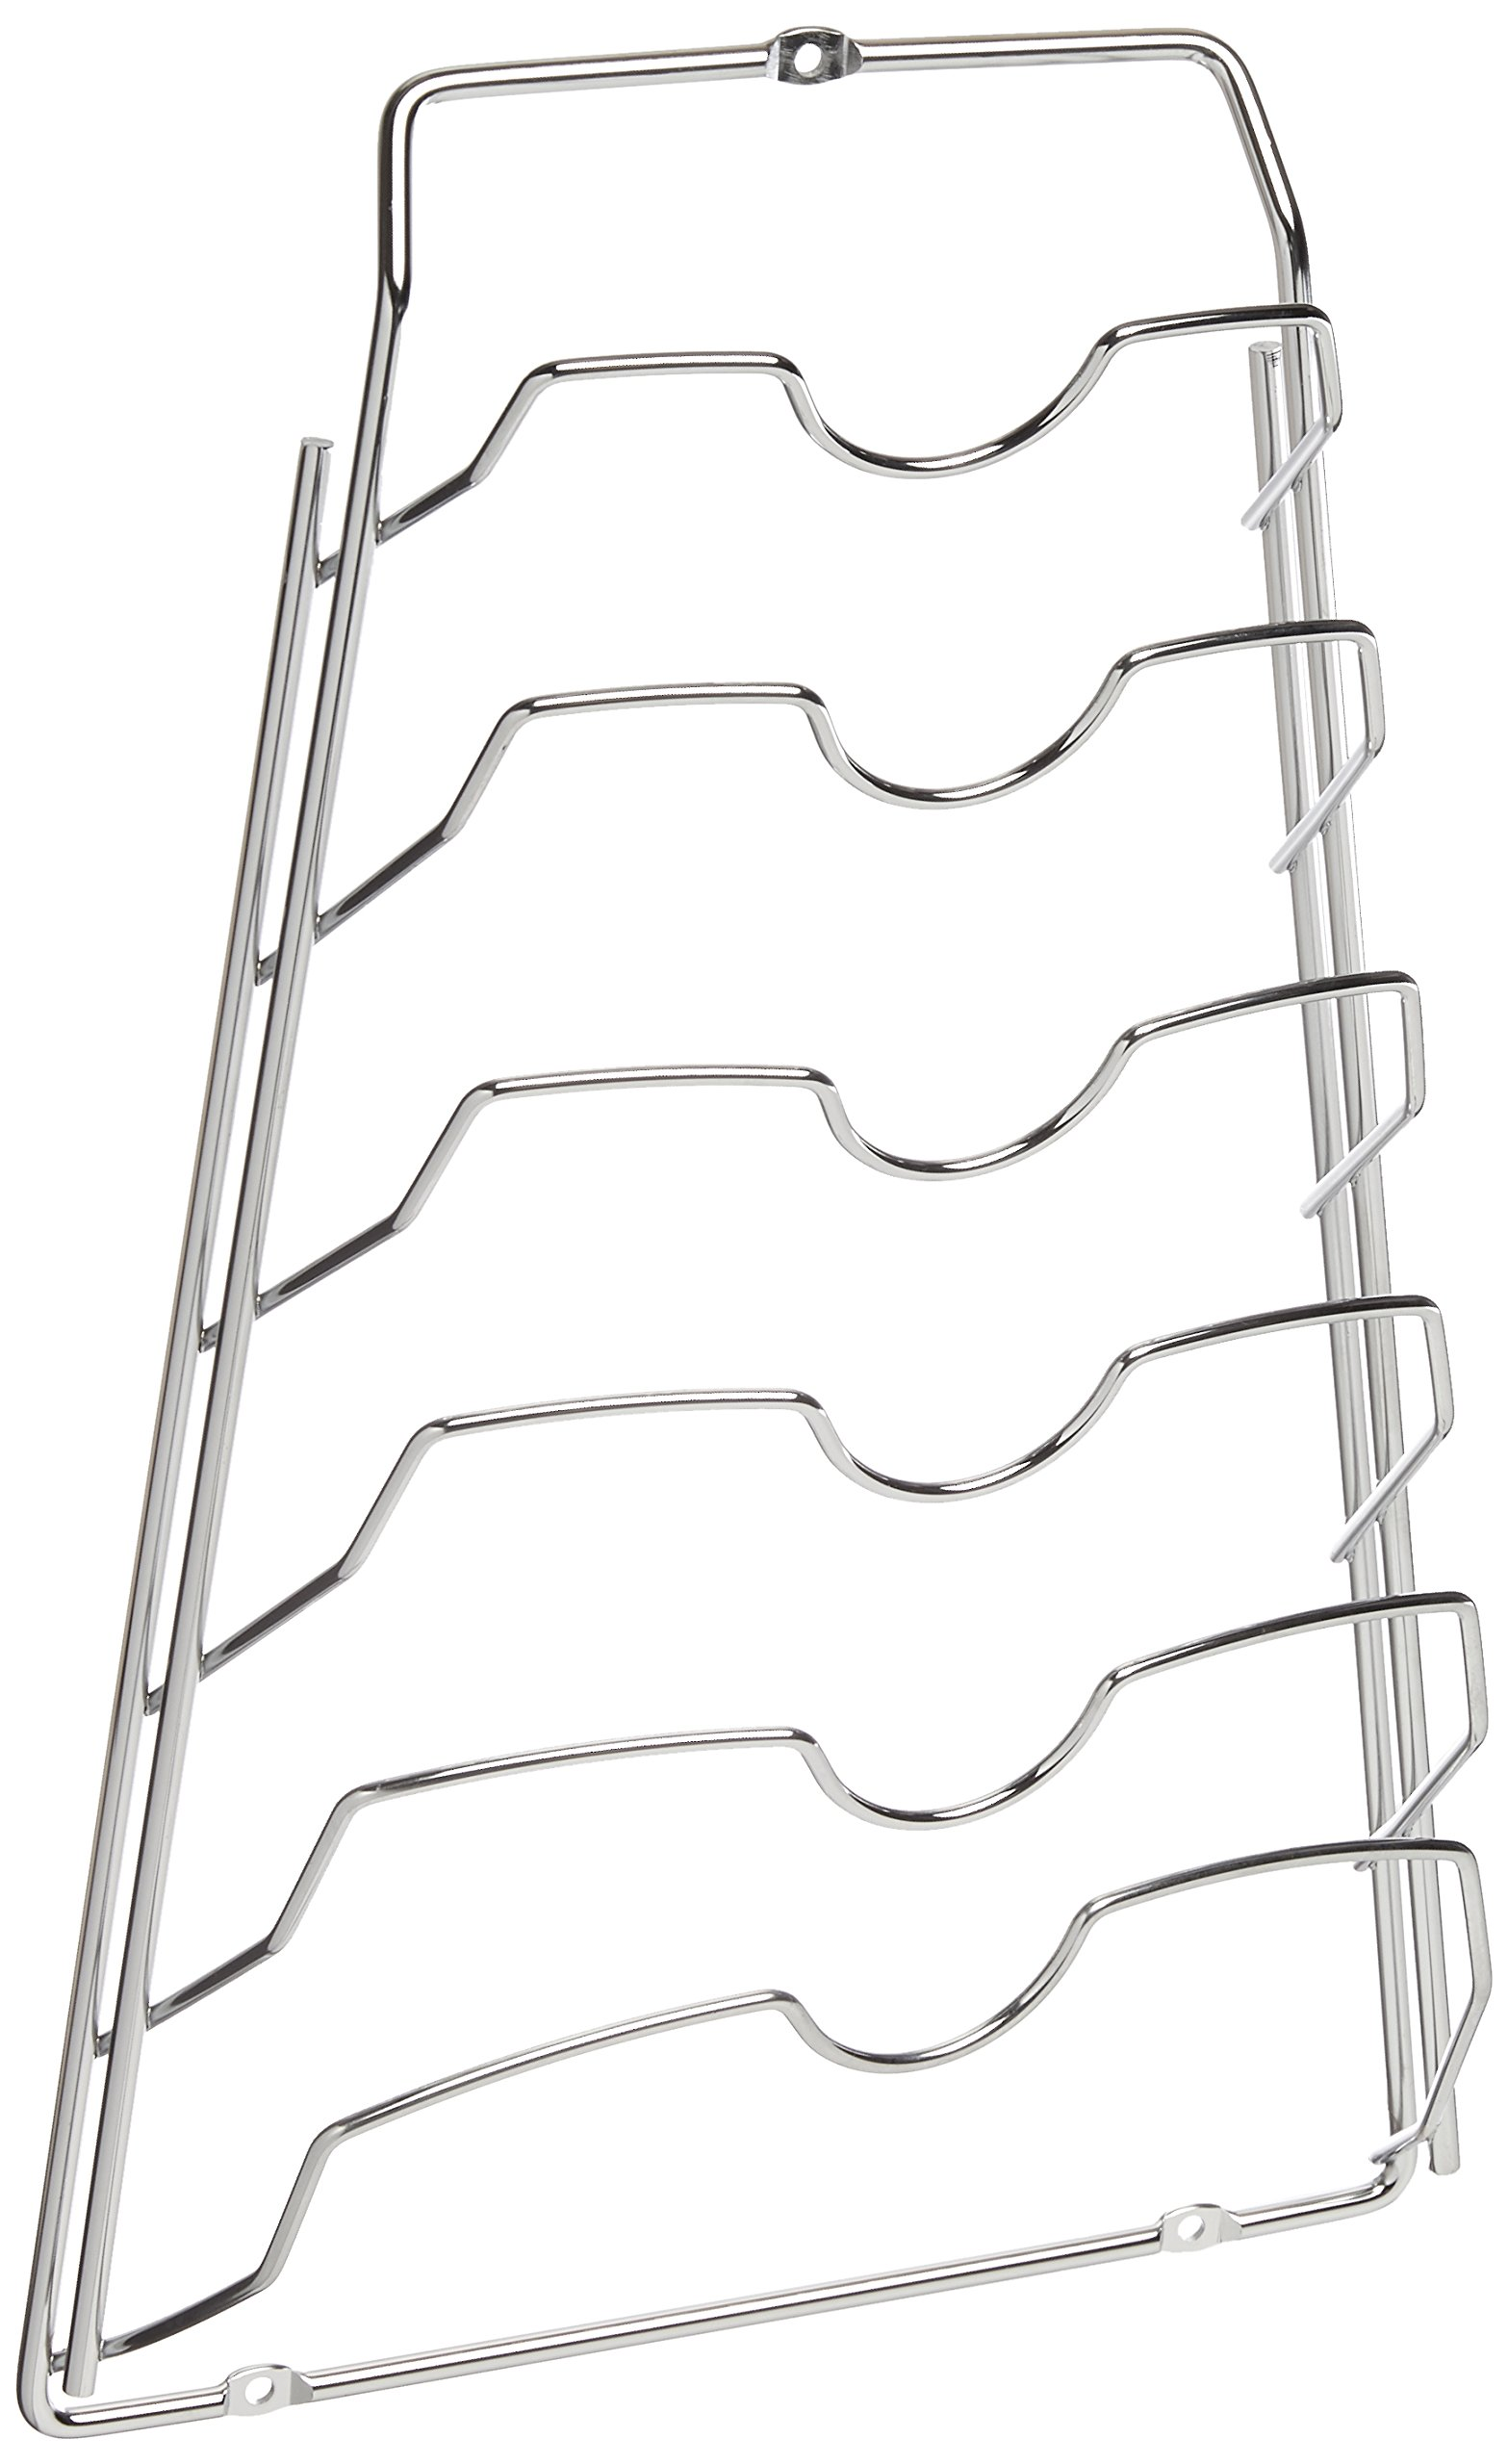 Organize It All Wall Cabinet Door Mounted Pot Lid Rack, Chrome Finish